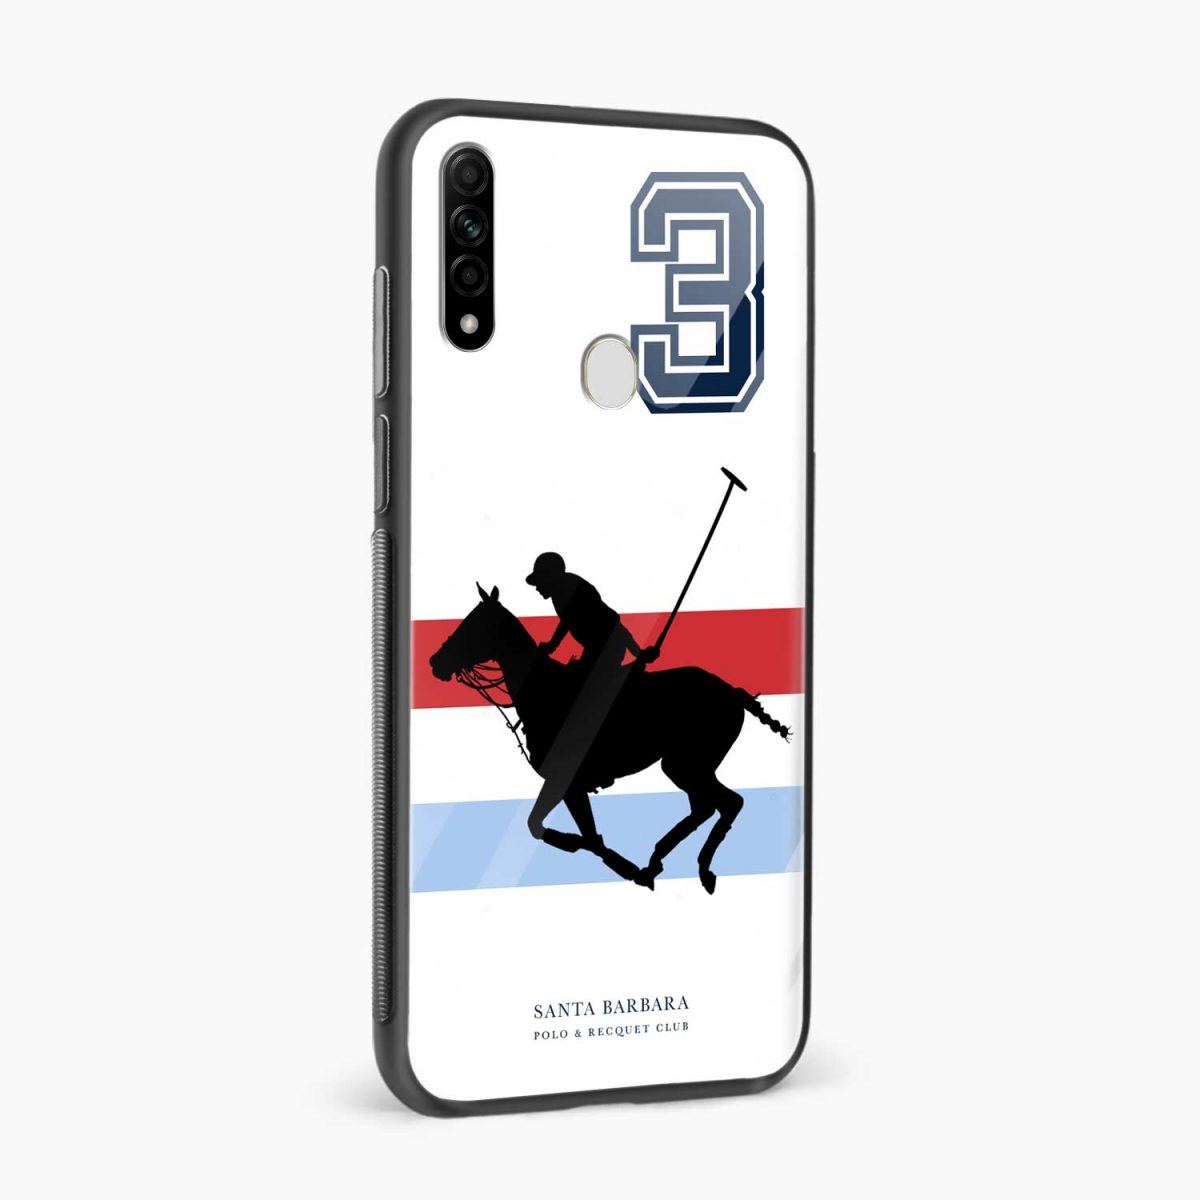 sant barbara polo side view oppo a31 back cover